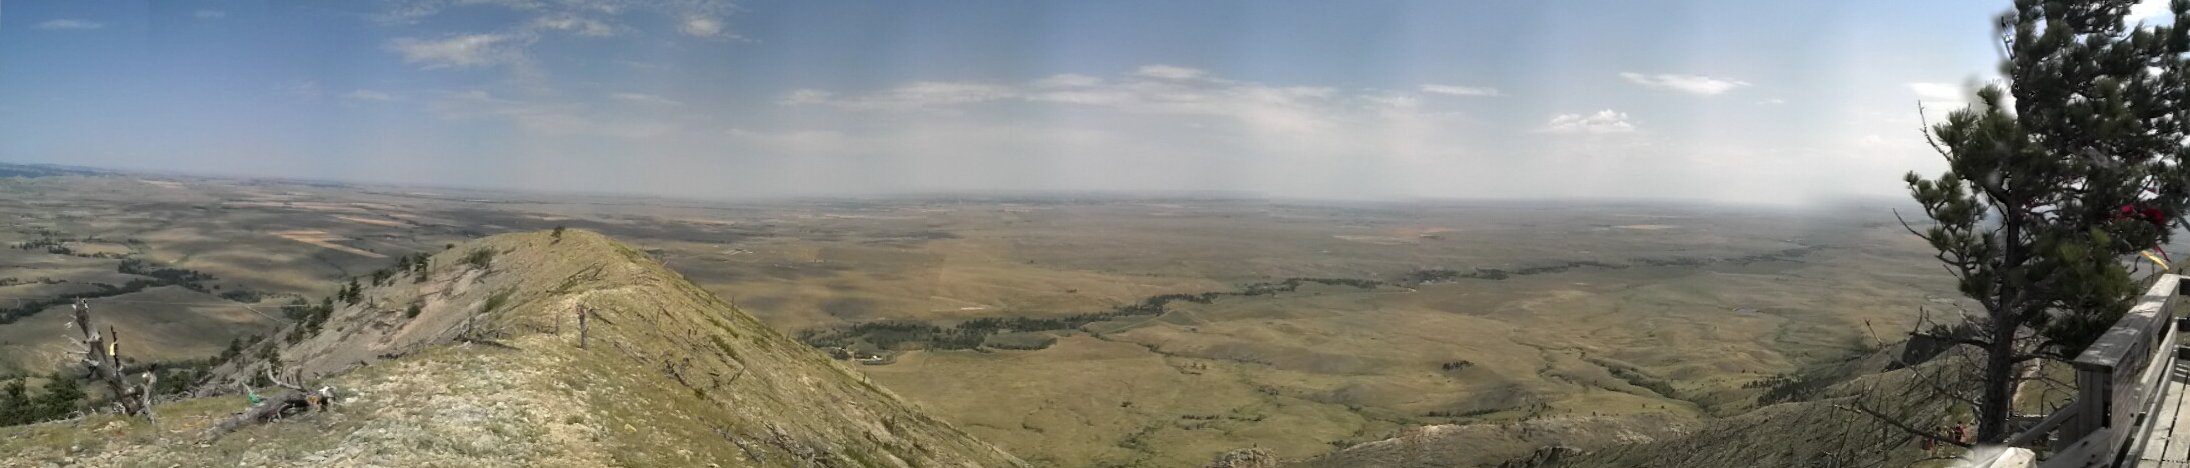 Panorama image from the summit of Bear Butte - looking from the North to East